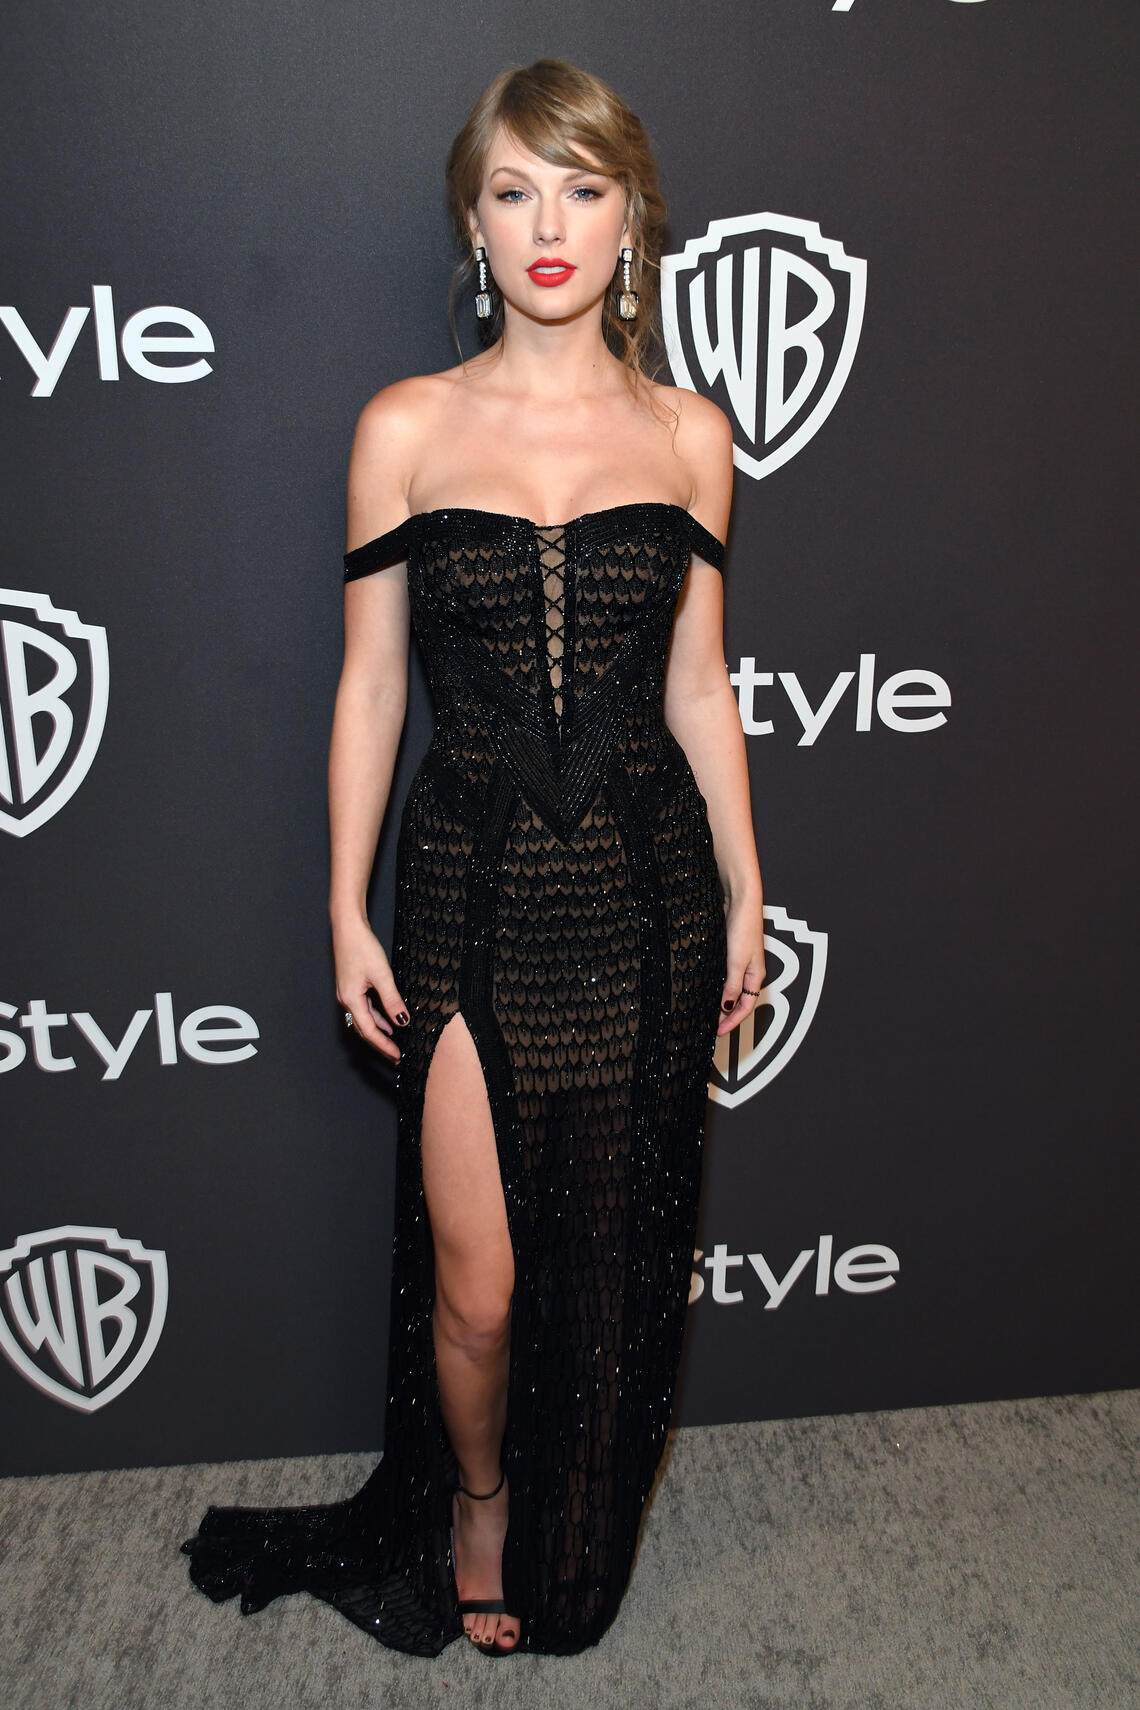 BEVERLY HILLS, CA - JANUARY 06:  Taylor Swift attends the 2019 InStyle and Warner Bros. 76th Annual Golden Globe Awards Post-Party at The Beverly Hilton Hotel on January 6, 2019 in Beverly Hills, California.  (Photo by Kevin Mazur/Getty Images for InStyle)